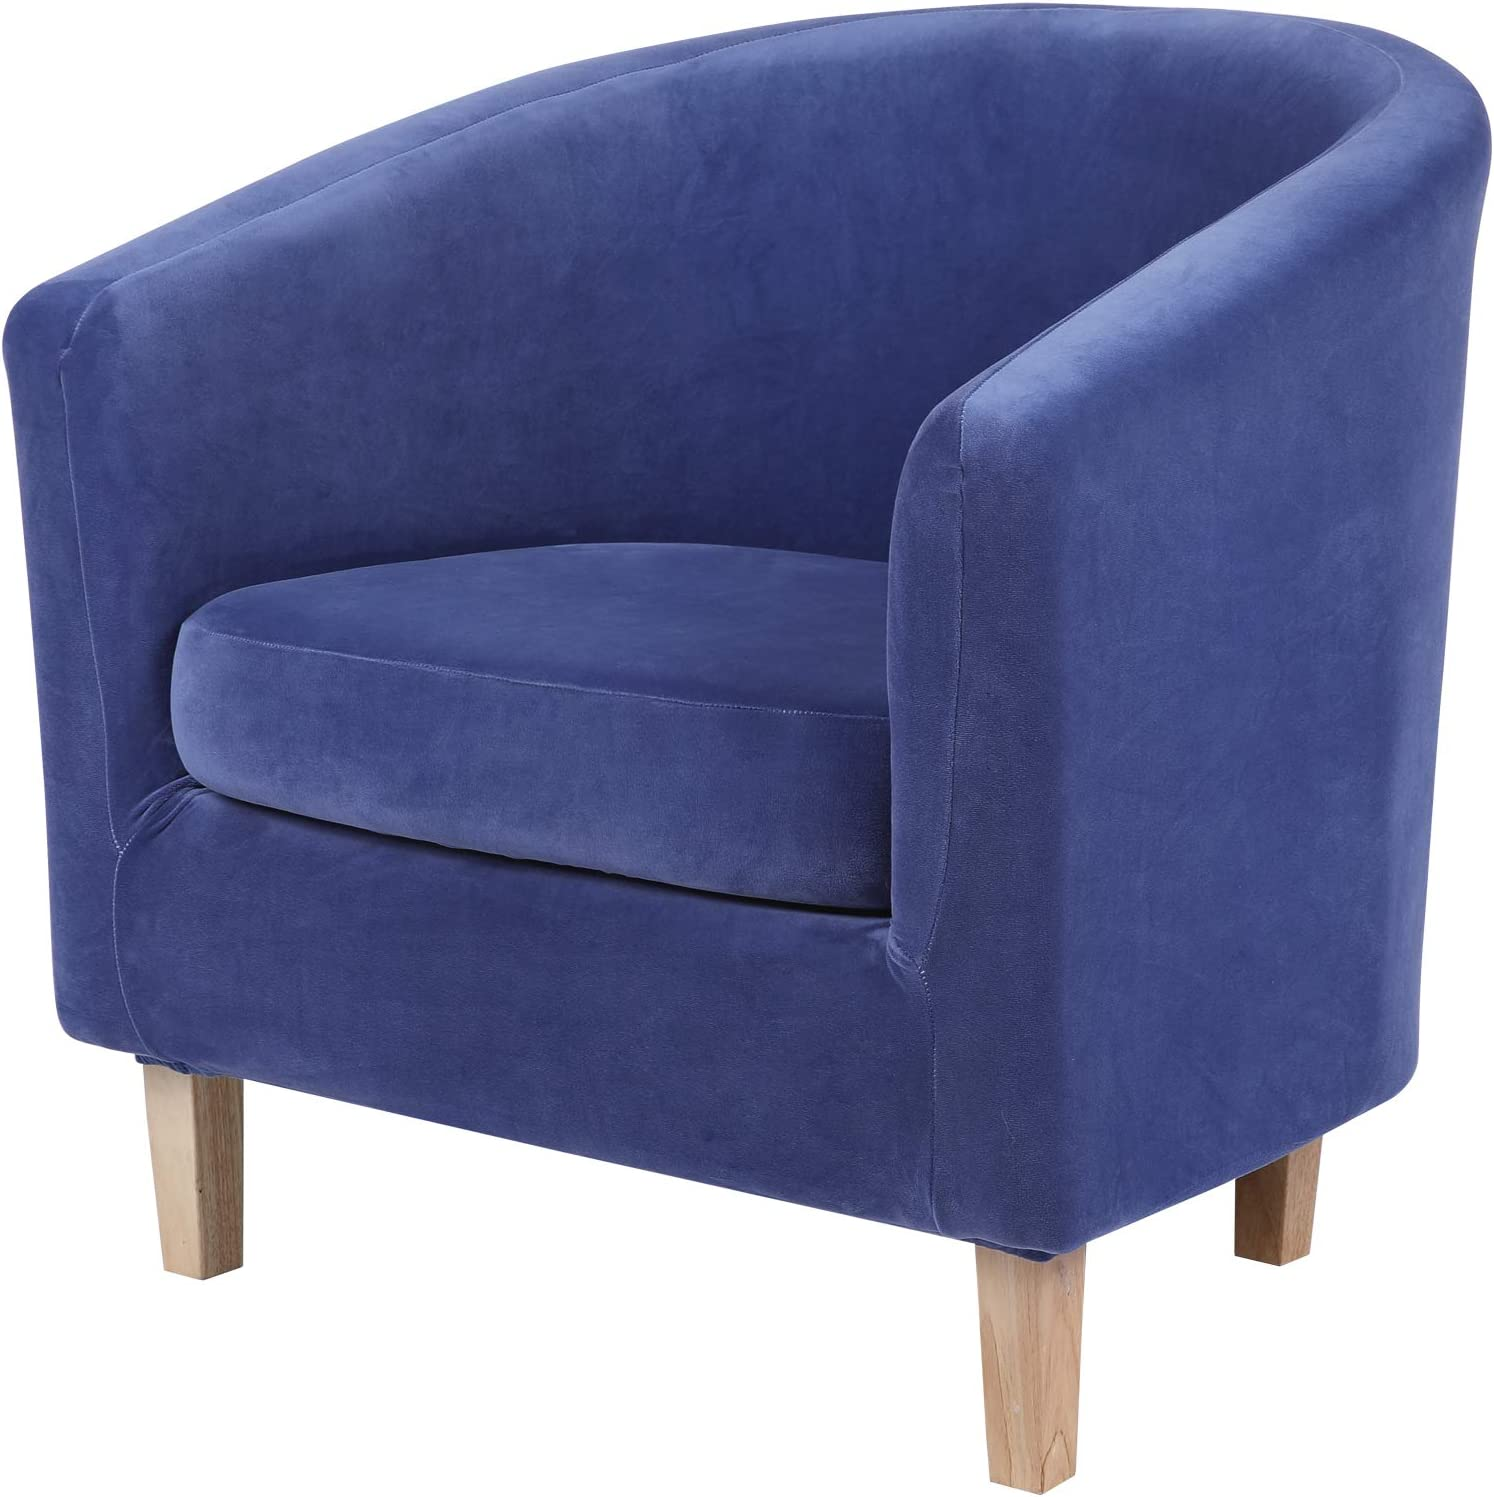 hyha 2 Pieces Velvet Tub Chair Cover with Cushion Cover, Removable Stretch Club Chair Slipcover for IKEA Tullsta, Armchair Furniture Protector for Living Room, Navy